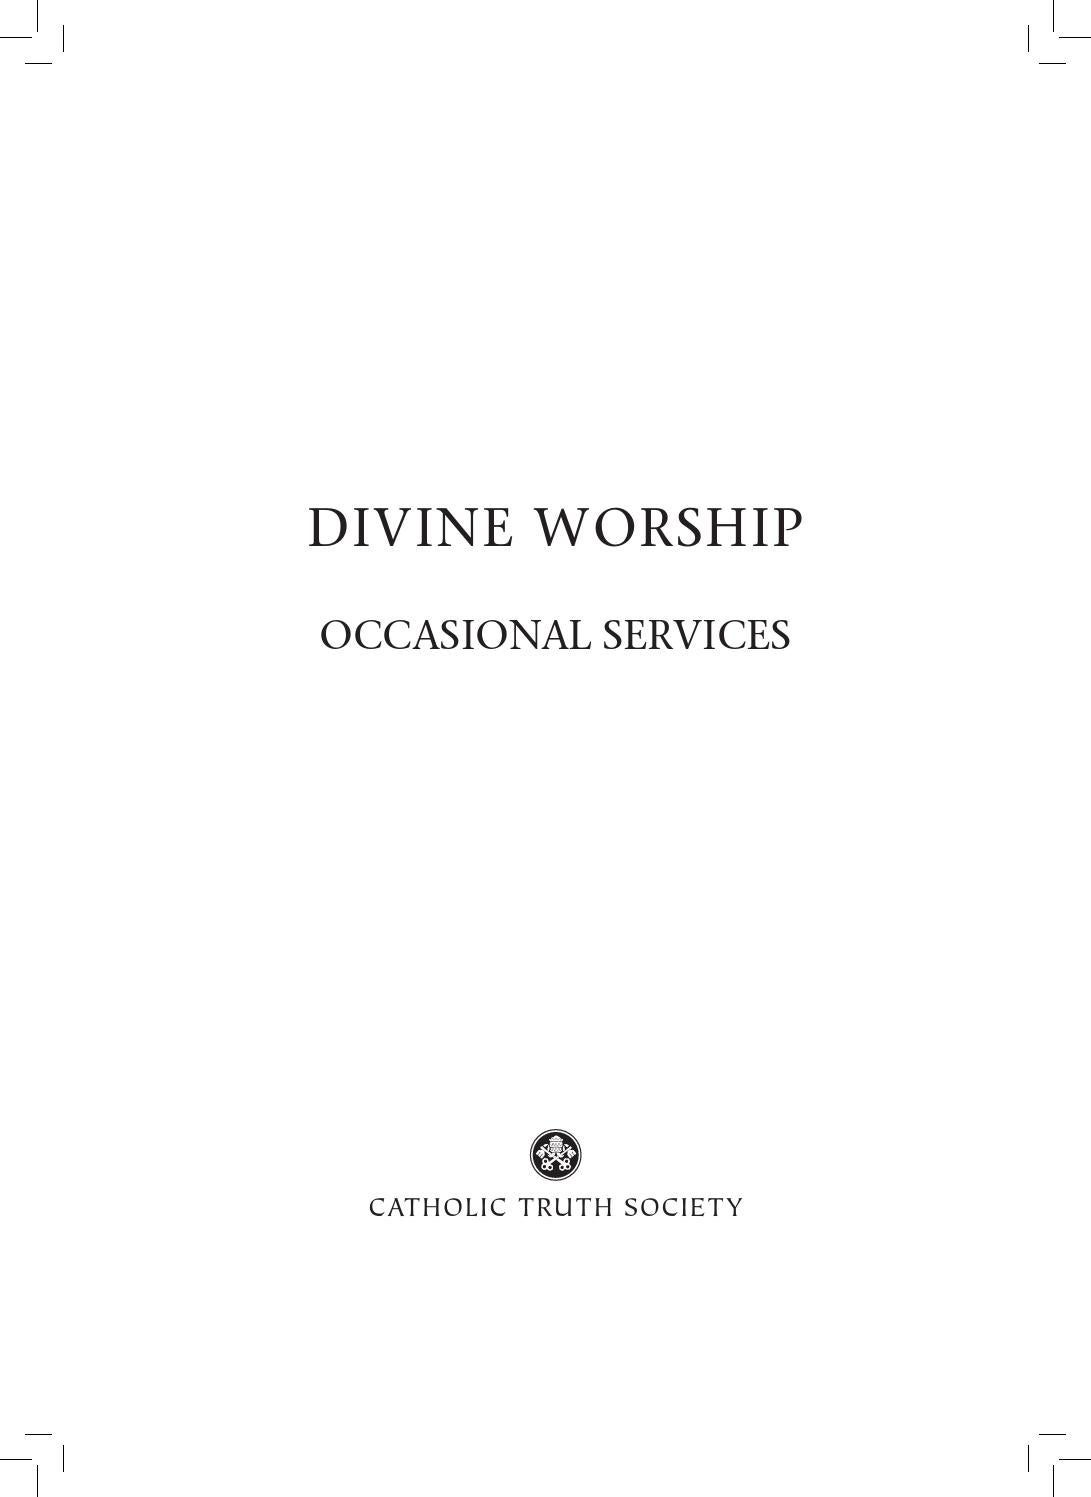 order of celebrating matrimony preview by catholic truth society divine worship occasional services sample